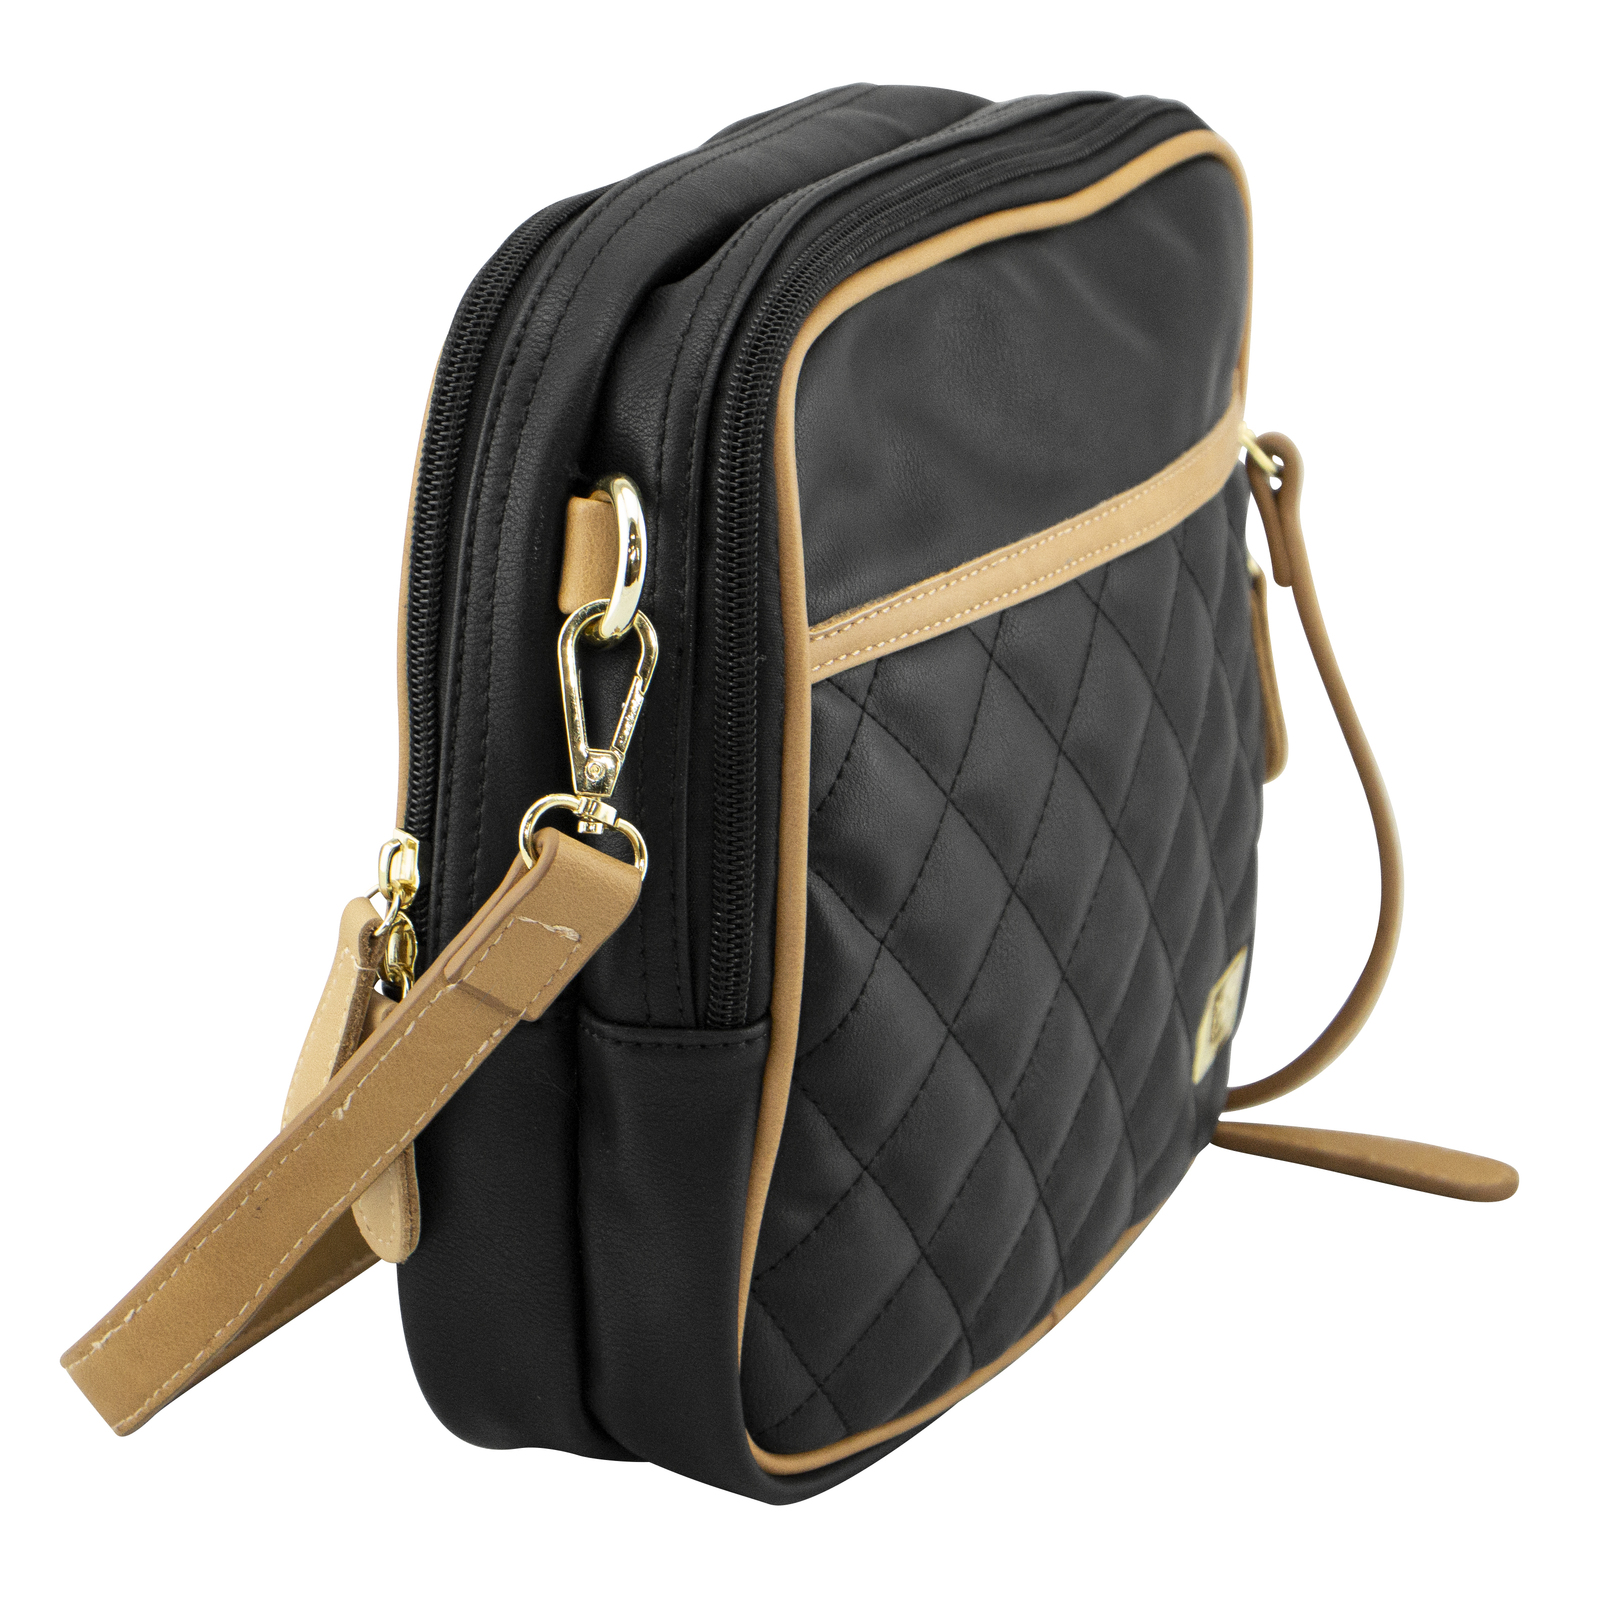 Isoki: Nappy Bag Finley Crossover Bag - Black/Tan Quilted image